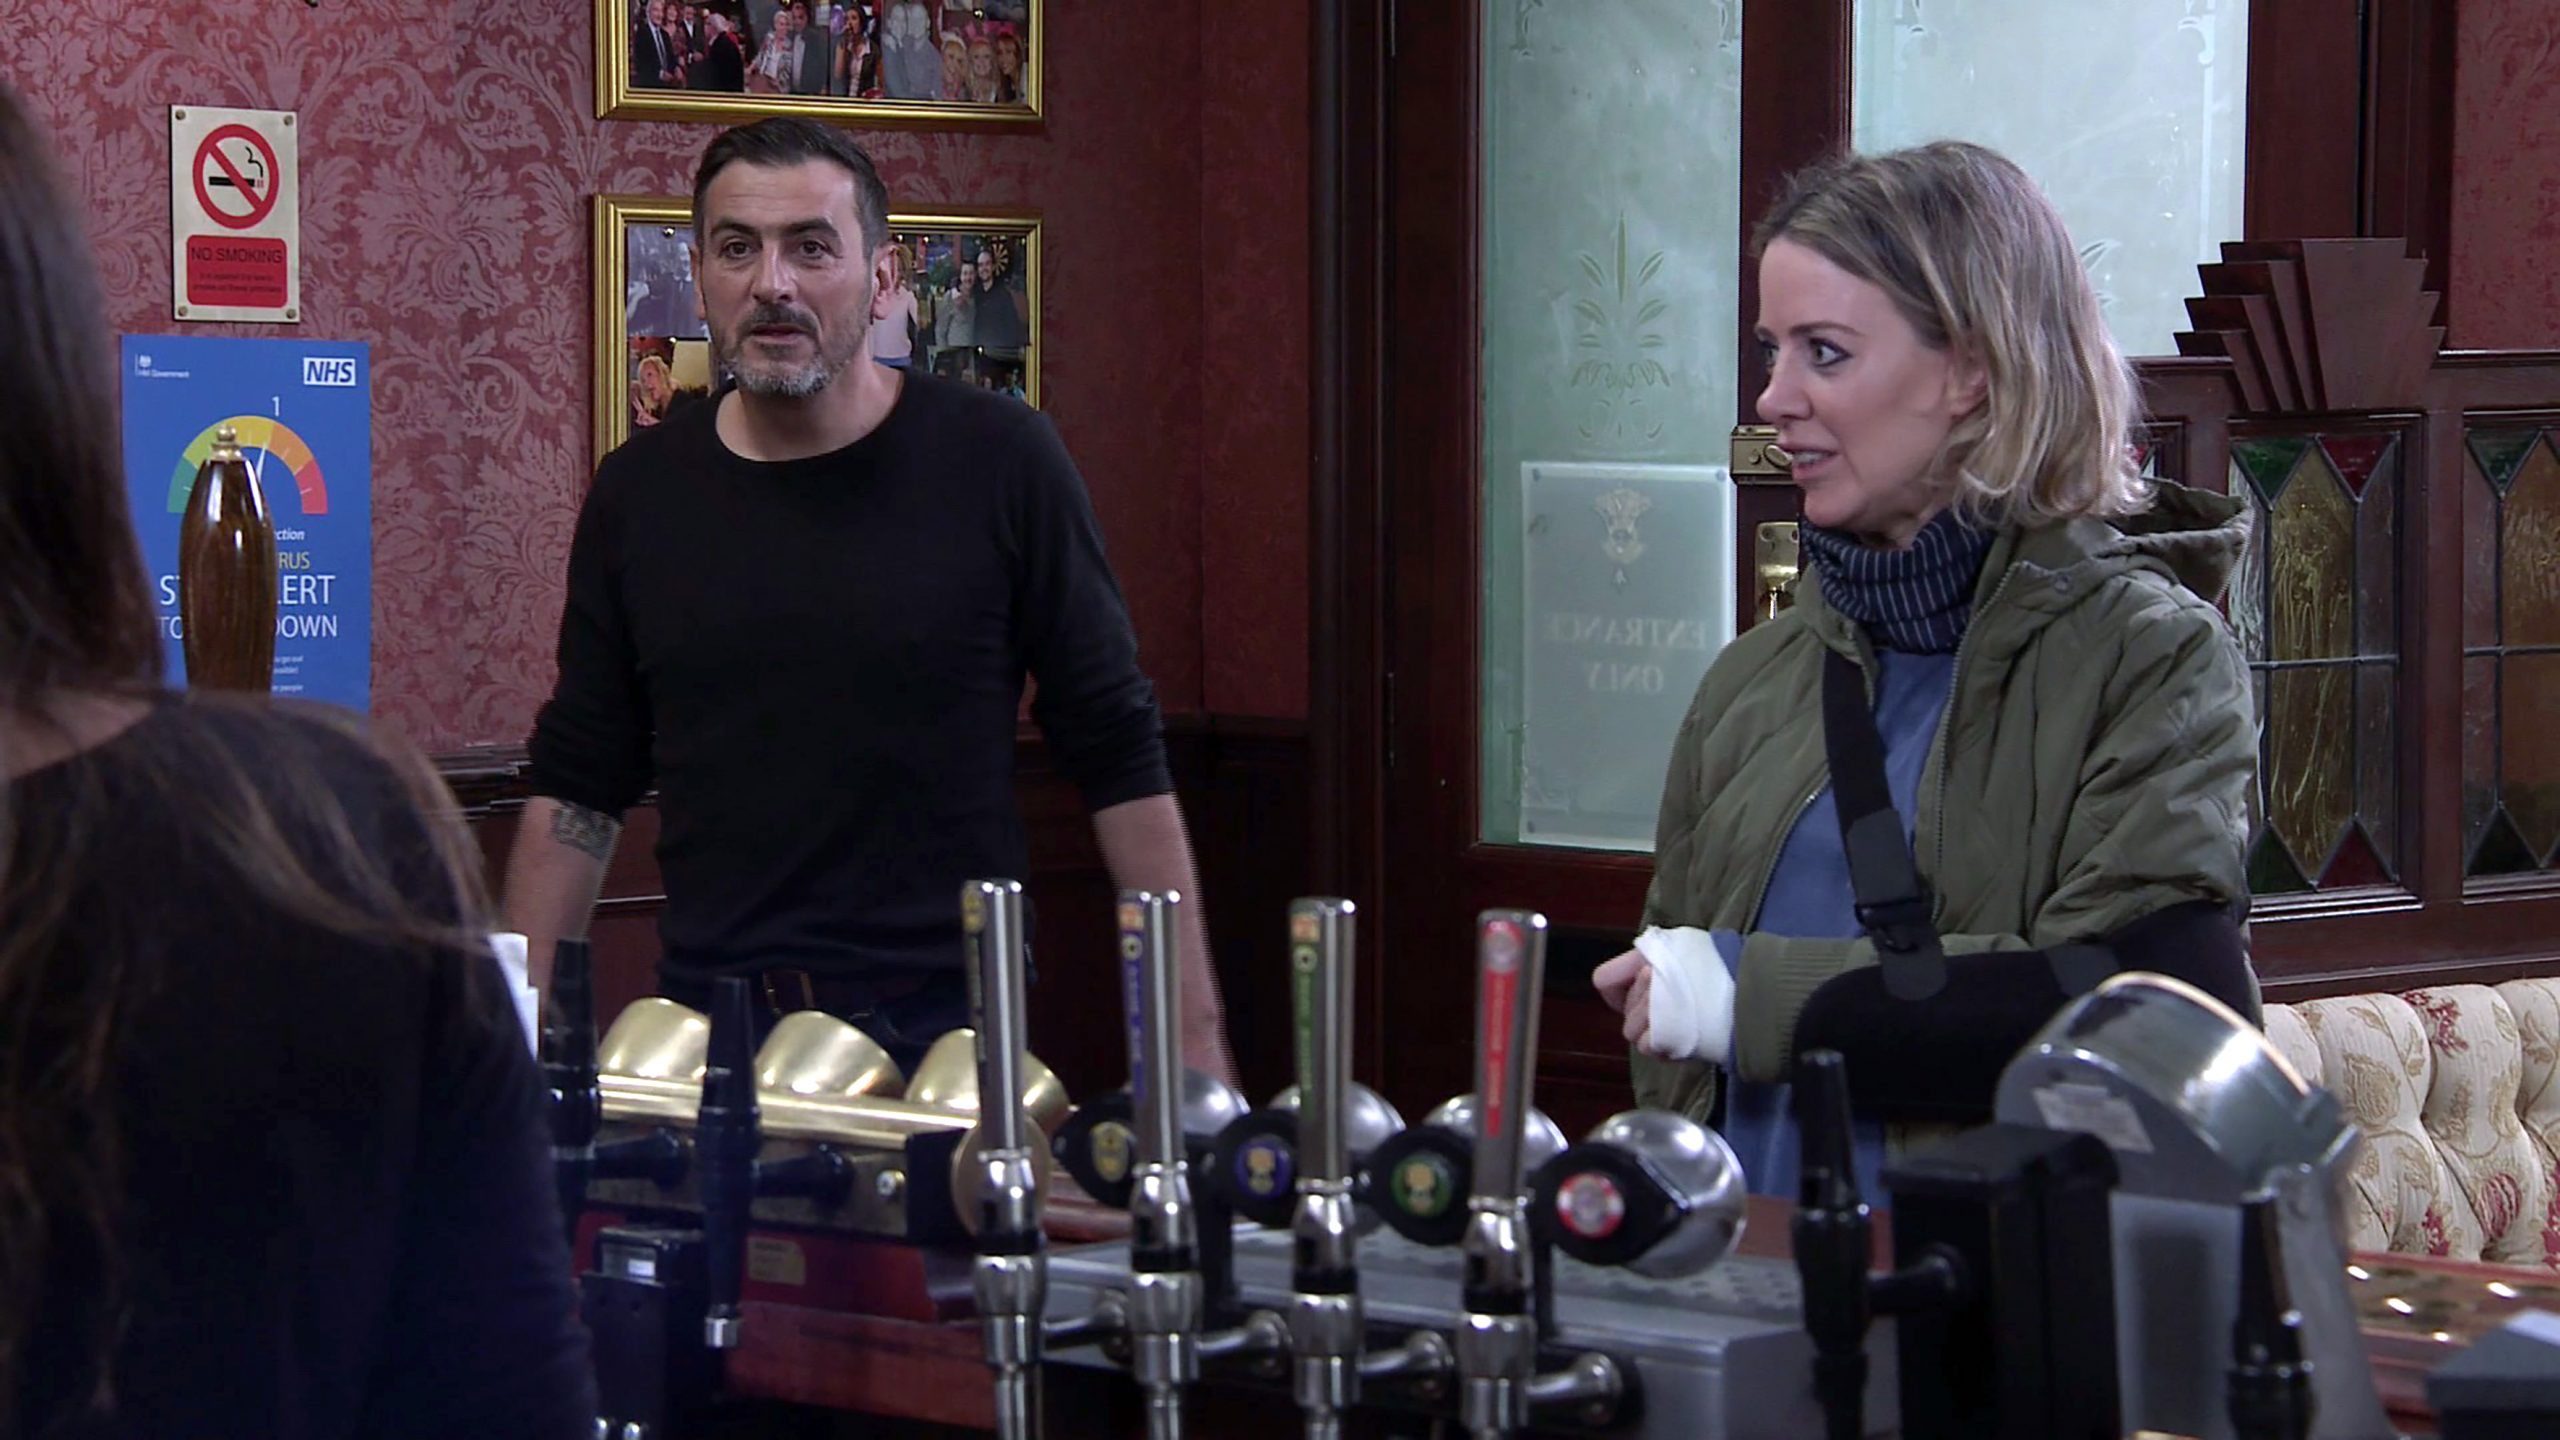 News of Peter Barlow and Abi's 'affair' is out…